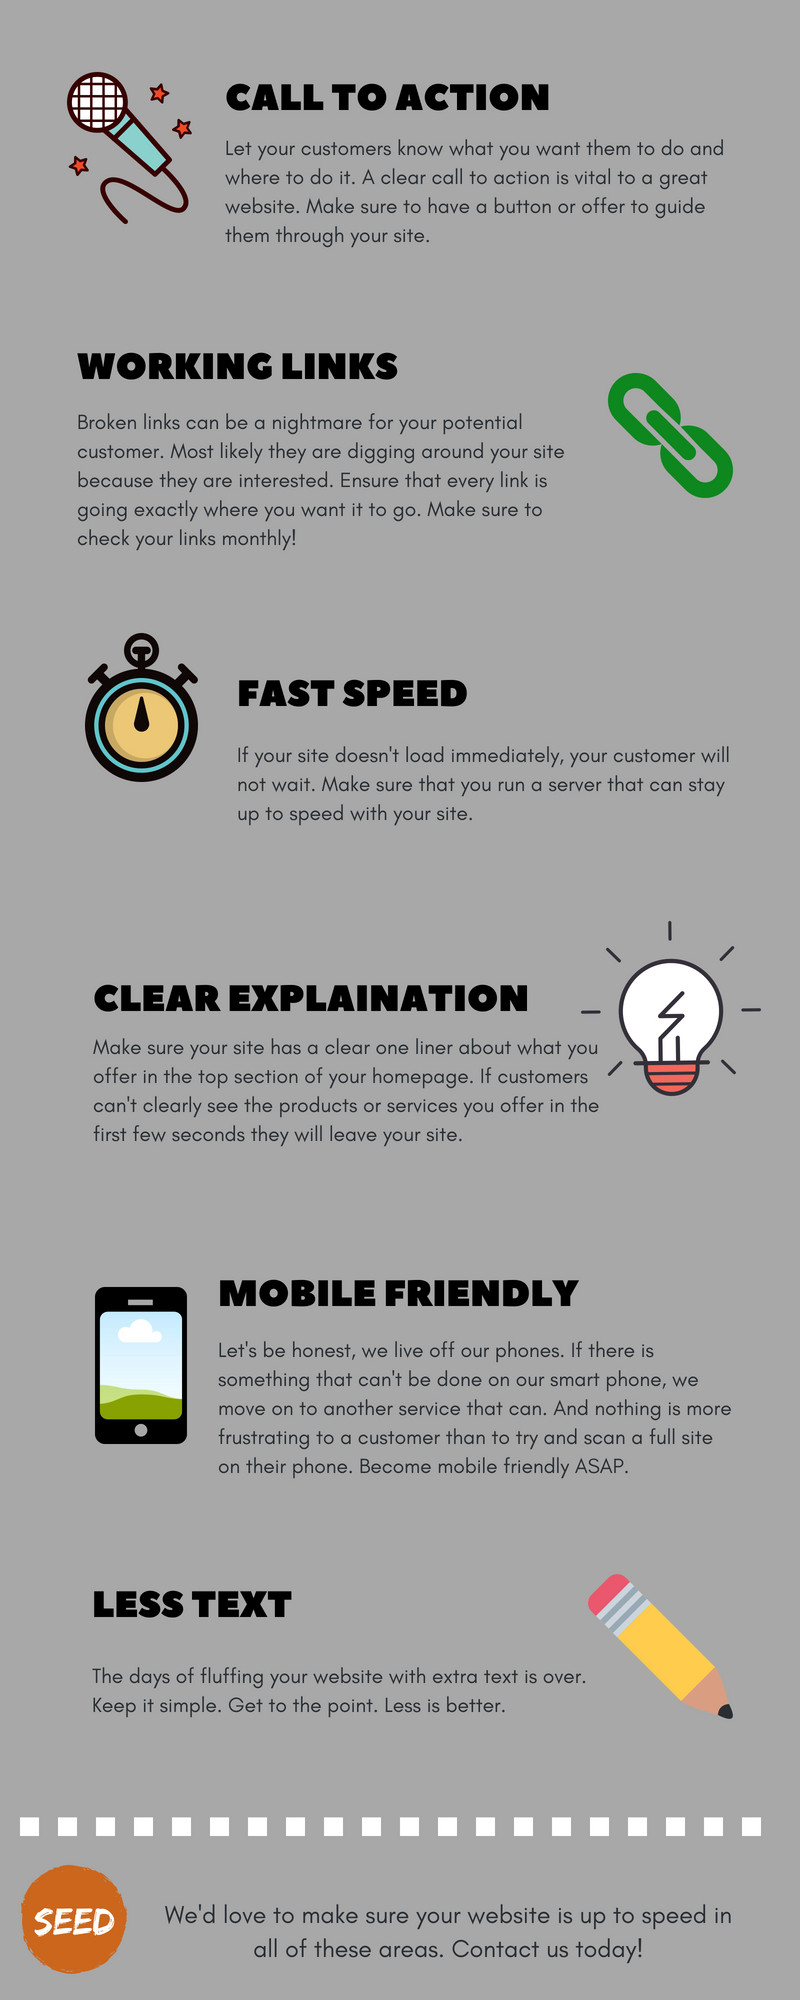 6 Tips for a website